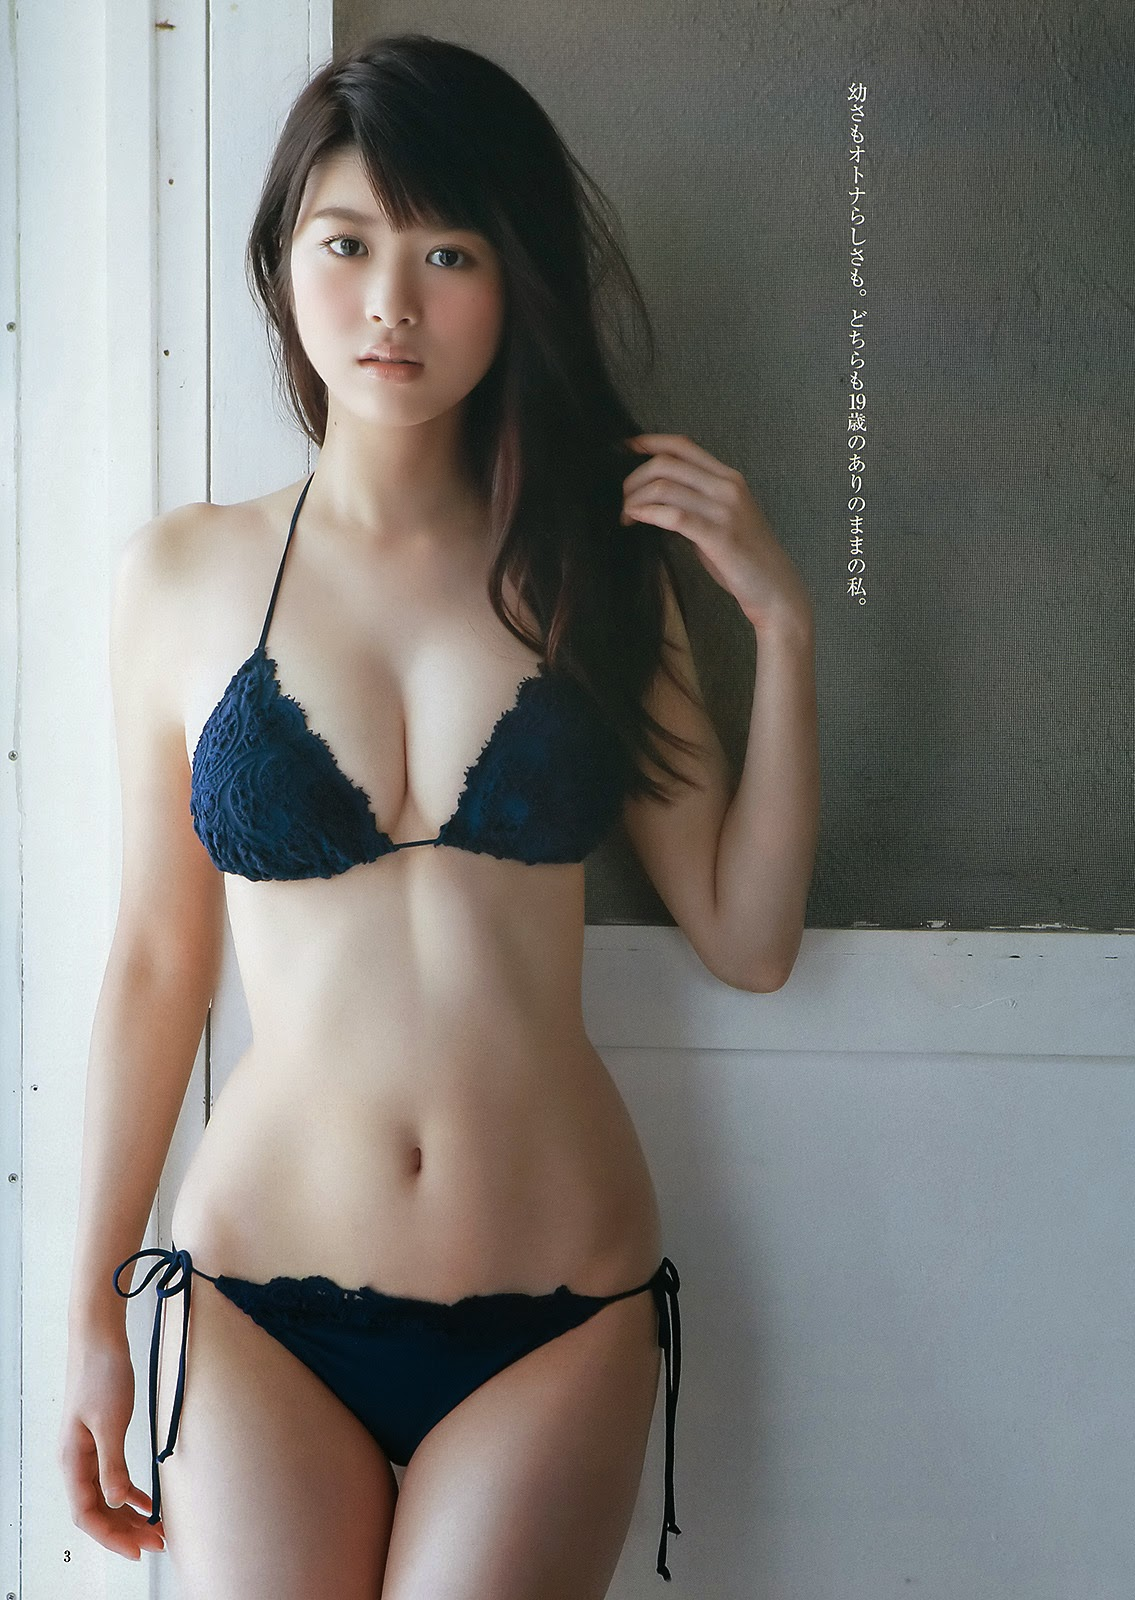 Fumika Baba 馬場ふみか Young Jump 2015 Pictures 2